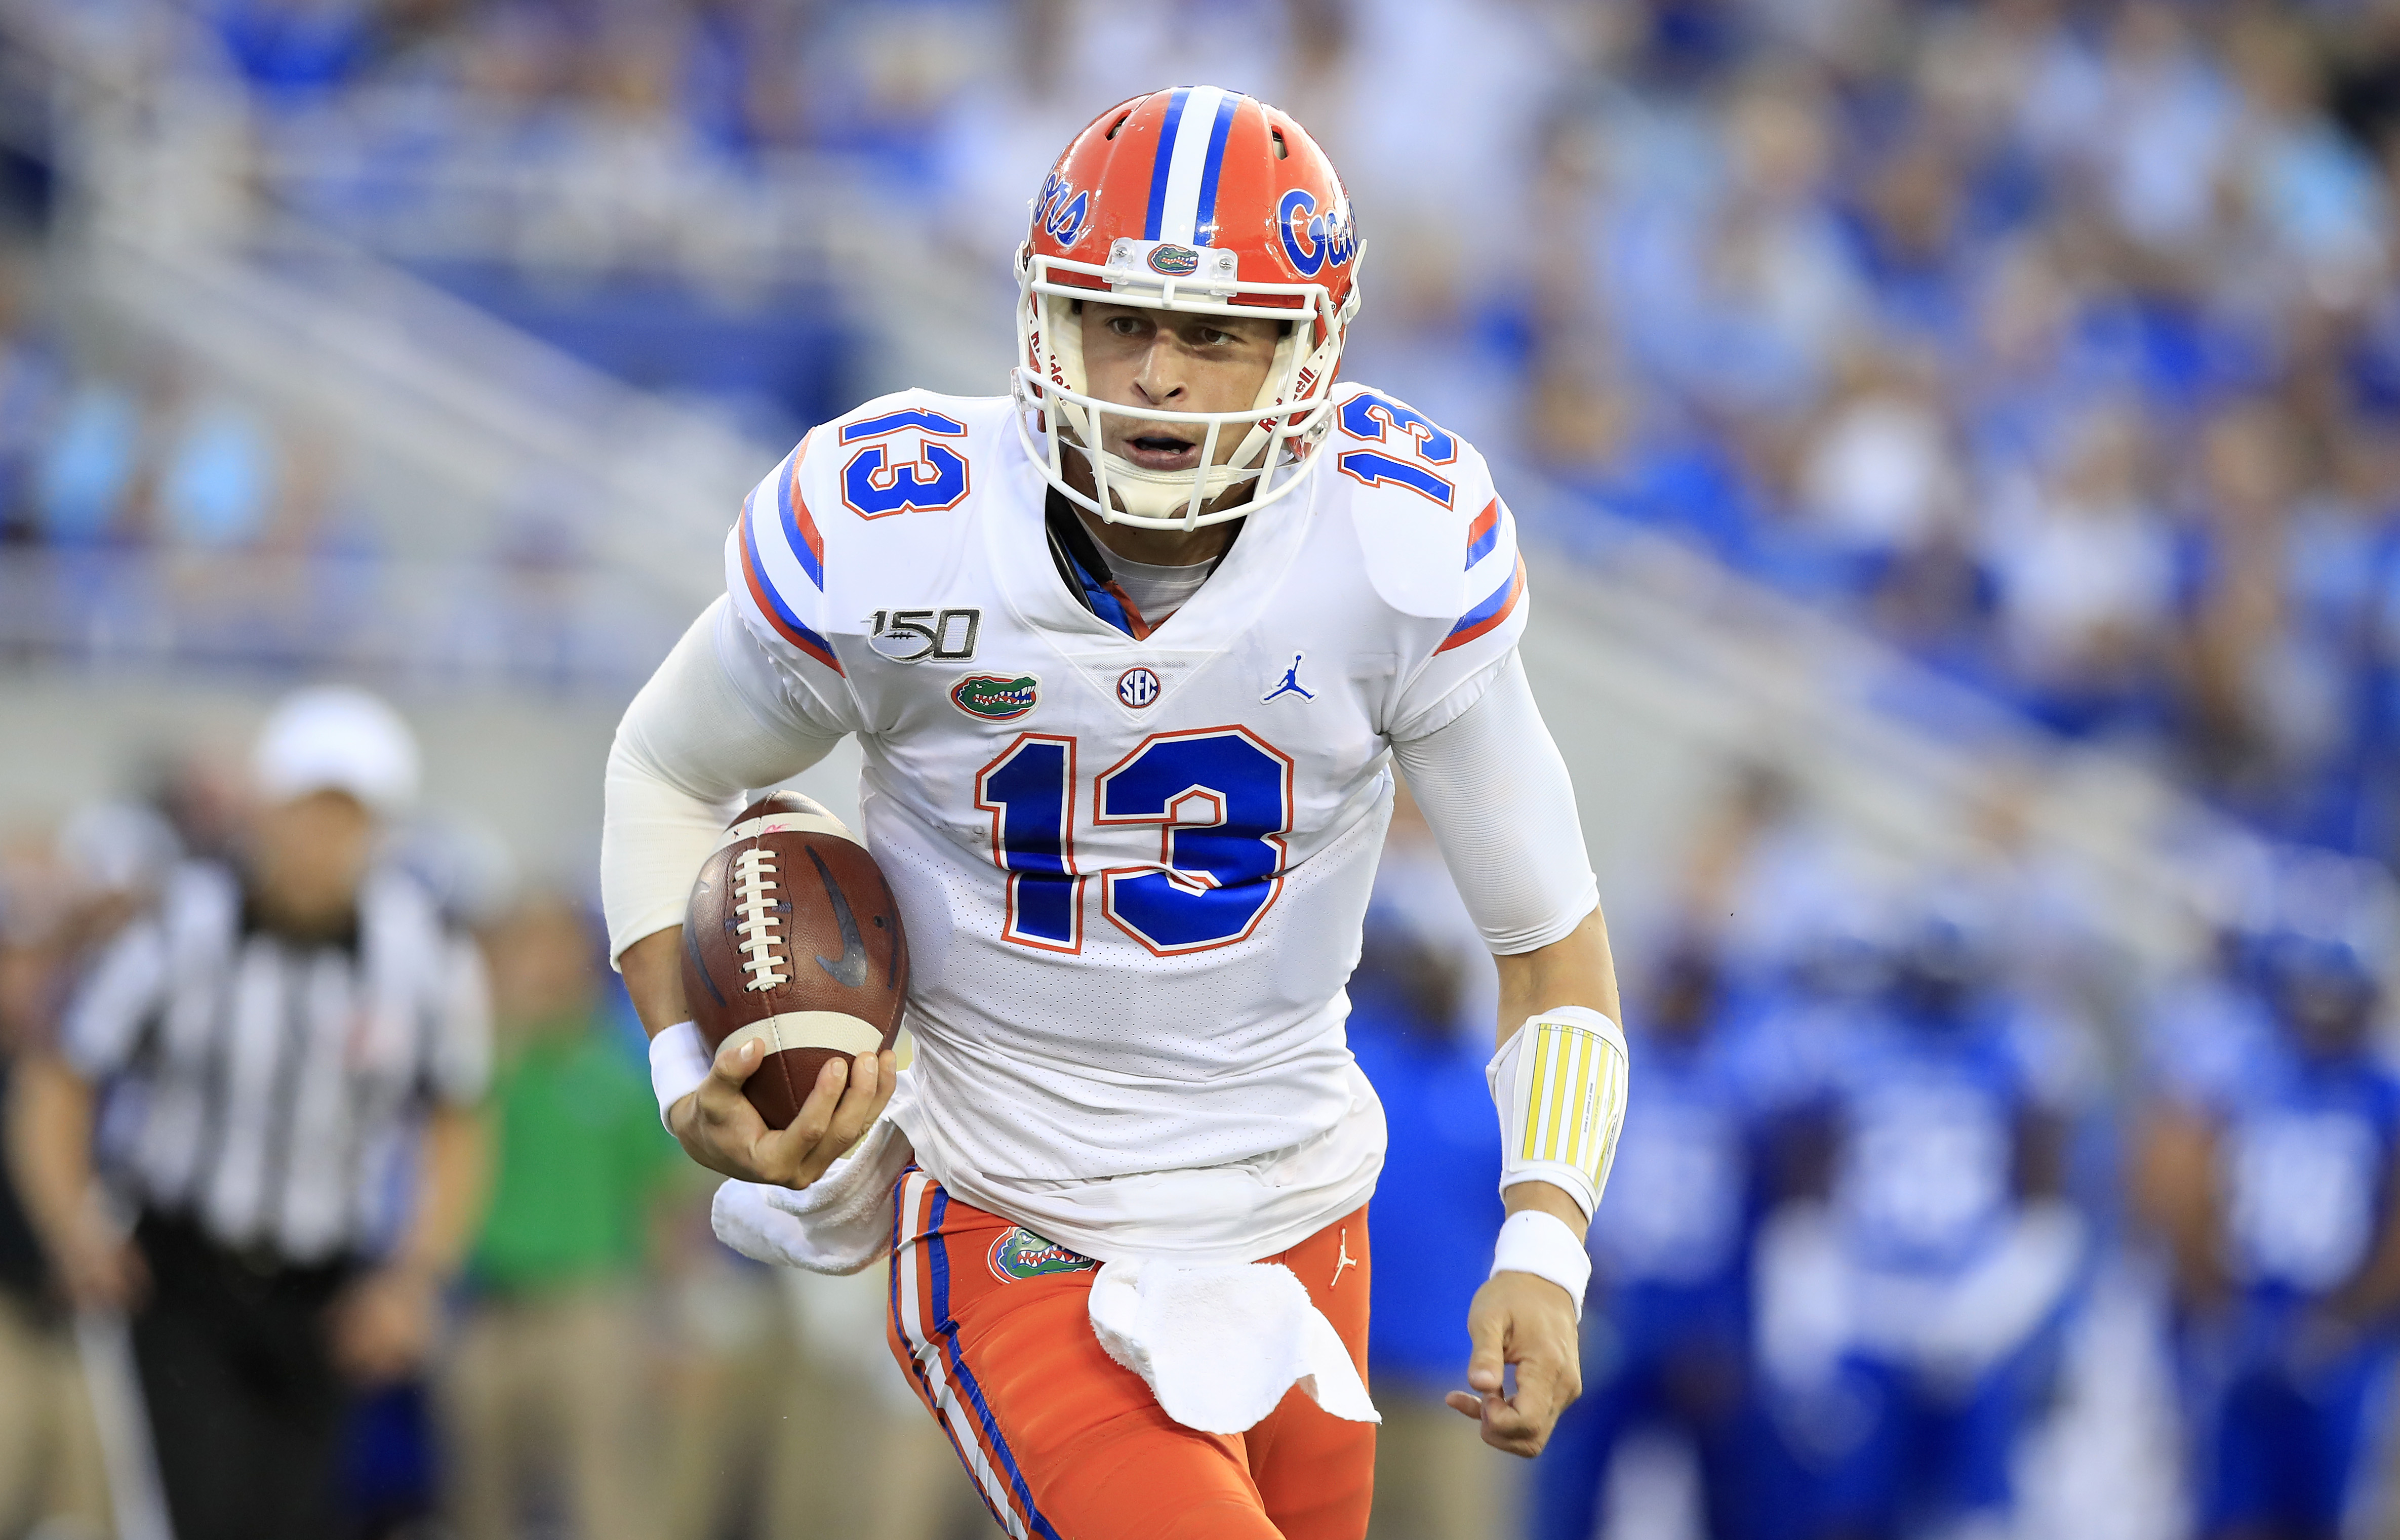 Feleipe Franks injury update: Florida quarterback likely out for year with dislocated ankle